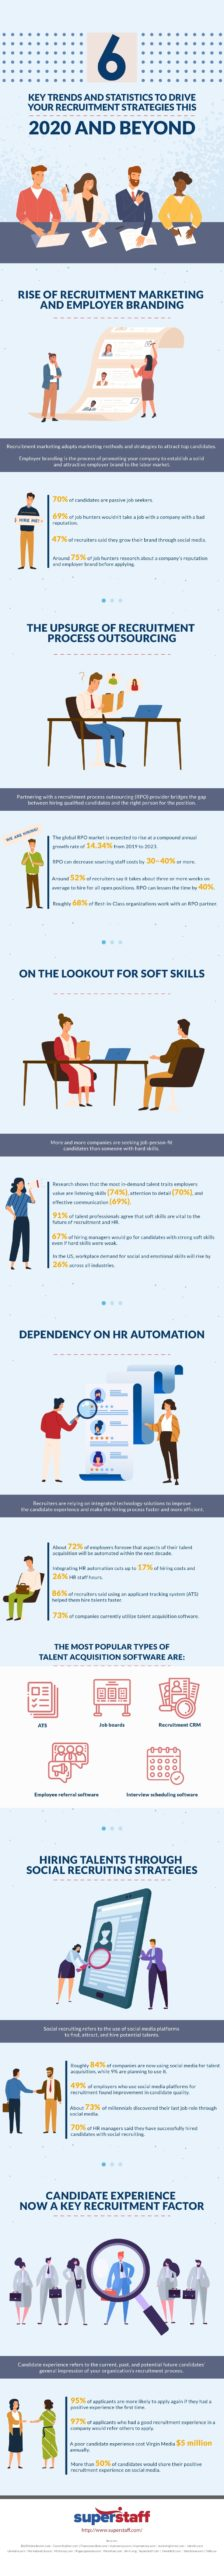 6 Key Trends and Statistics to Drive Your Recruitment Strategies